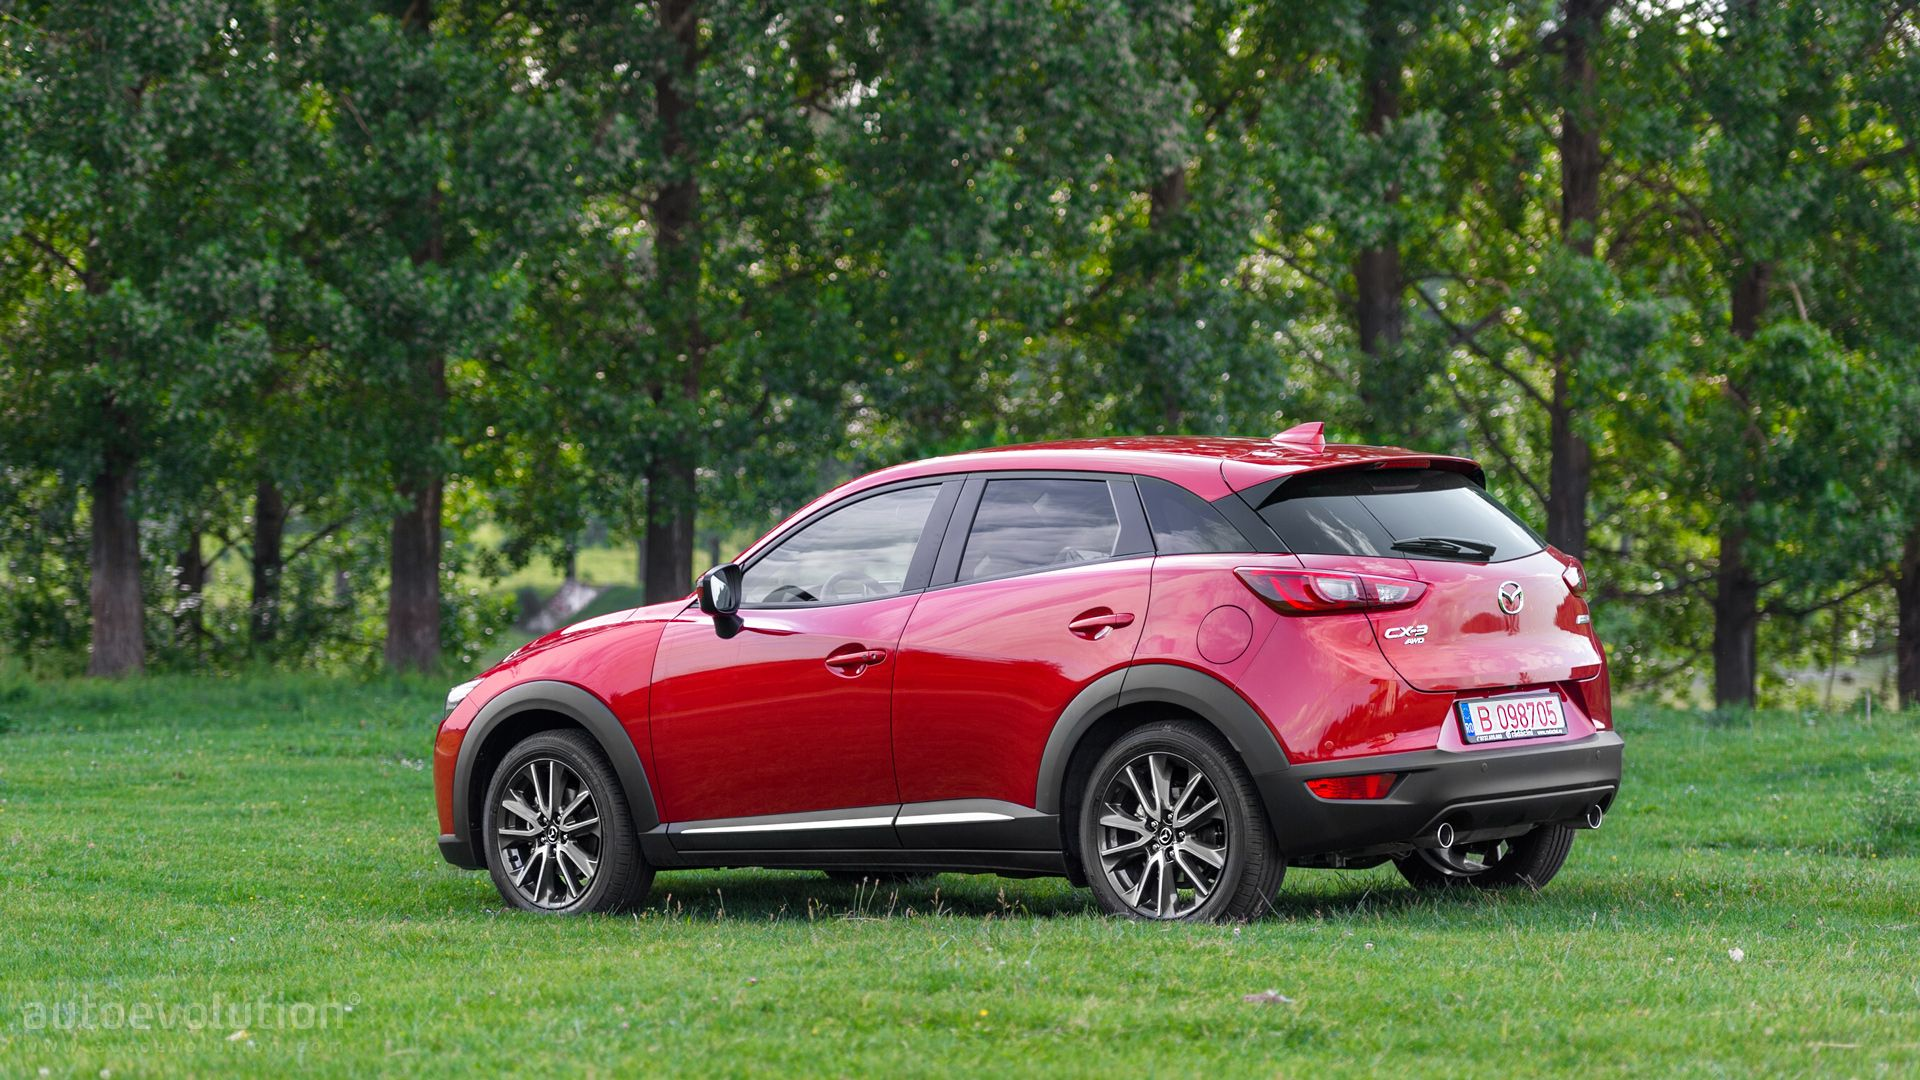 2015 mazda cx 3 hd wallpapers kodo lady in red. Black Bedroom Furniture Sets. Home Design Ideas